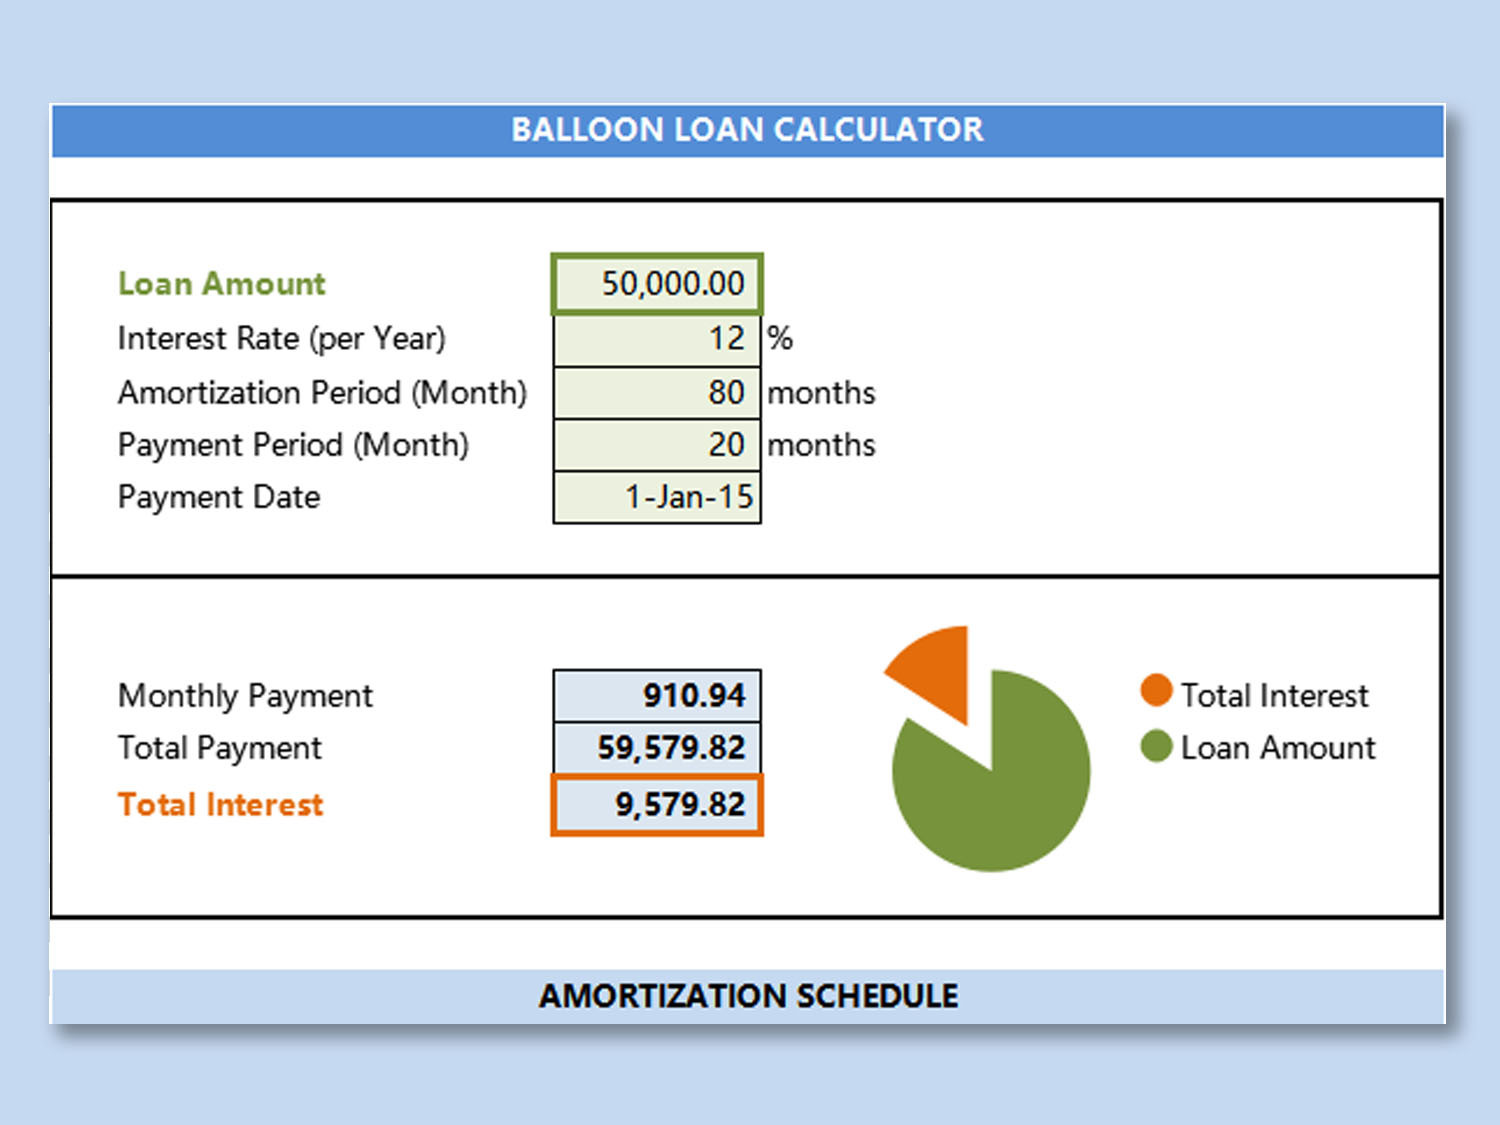 Mortgage Payoff Statement Template Download from d4z1onkegyrs5.cloudfront.net